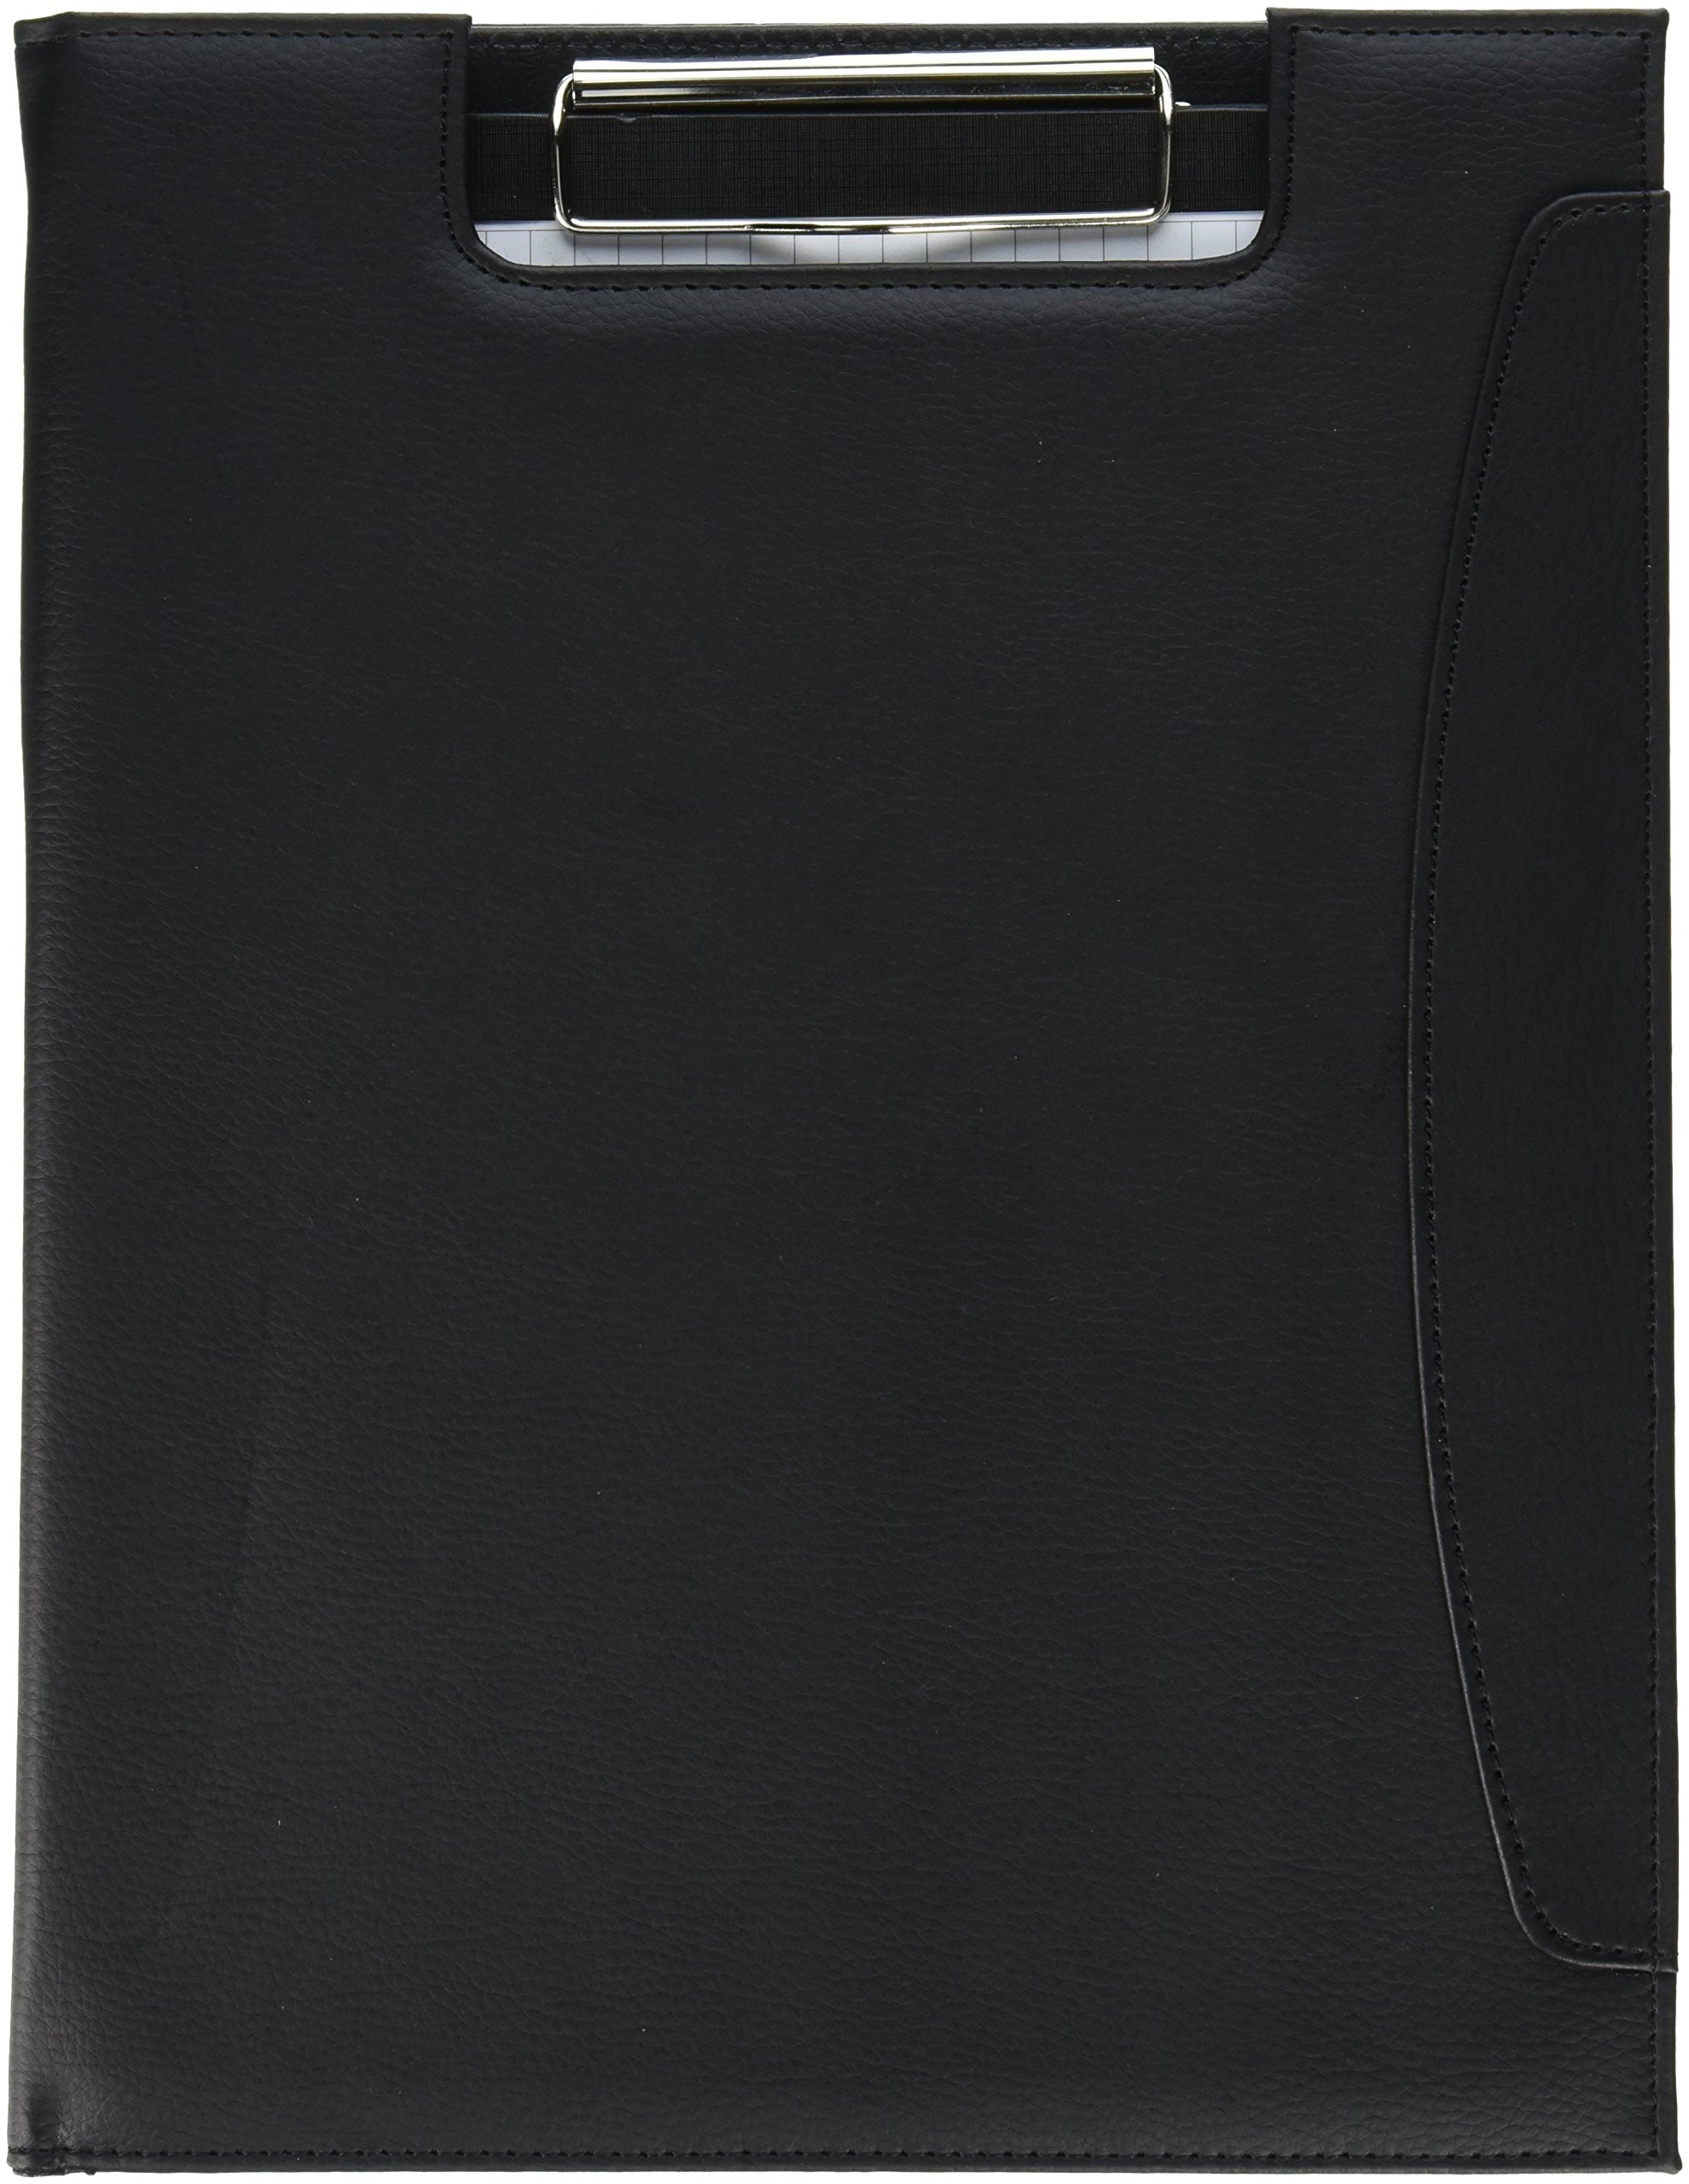 Natico Ring Binder, Portfolio, Padfolio Black, Clipboard 12.625 x 9.75 (60-PF-34)